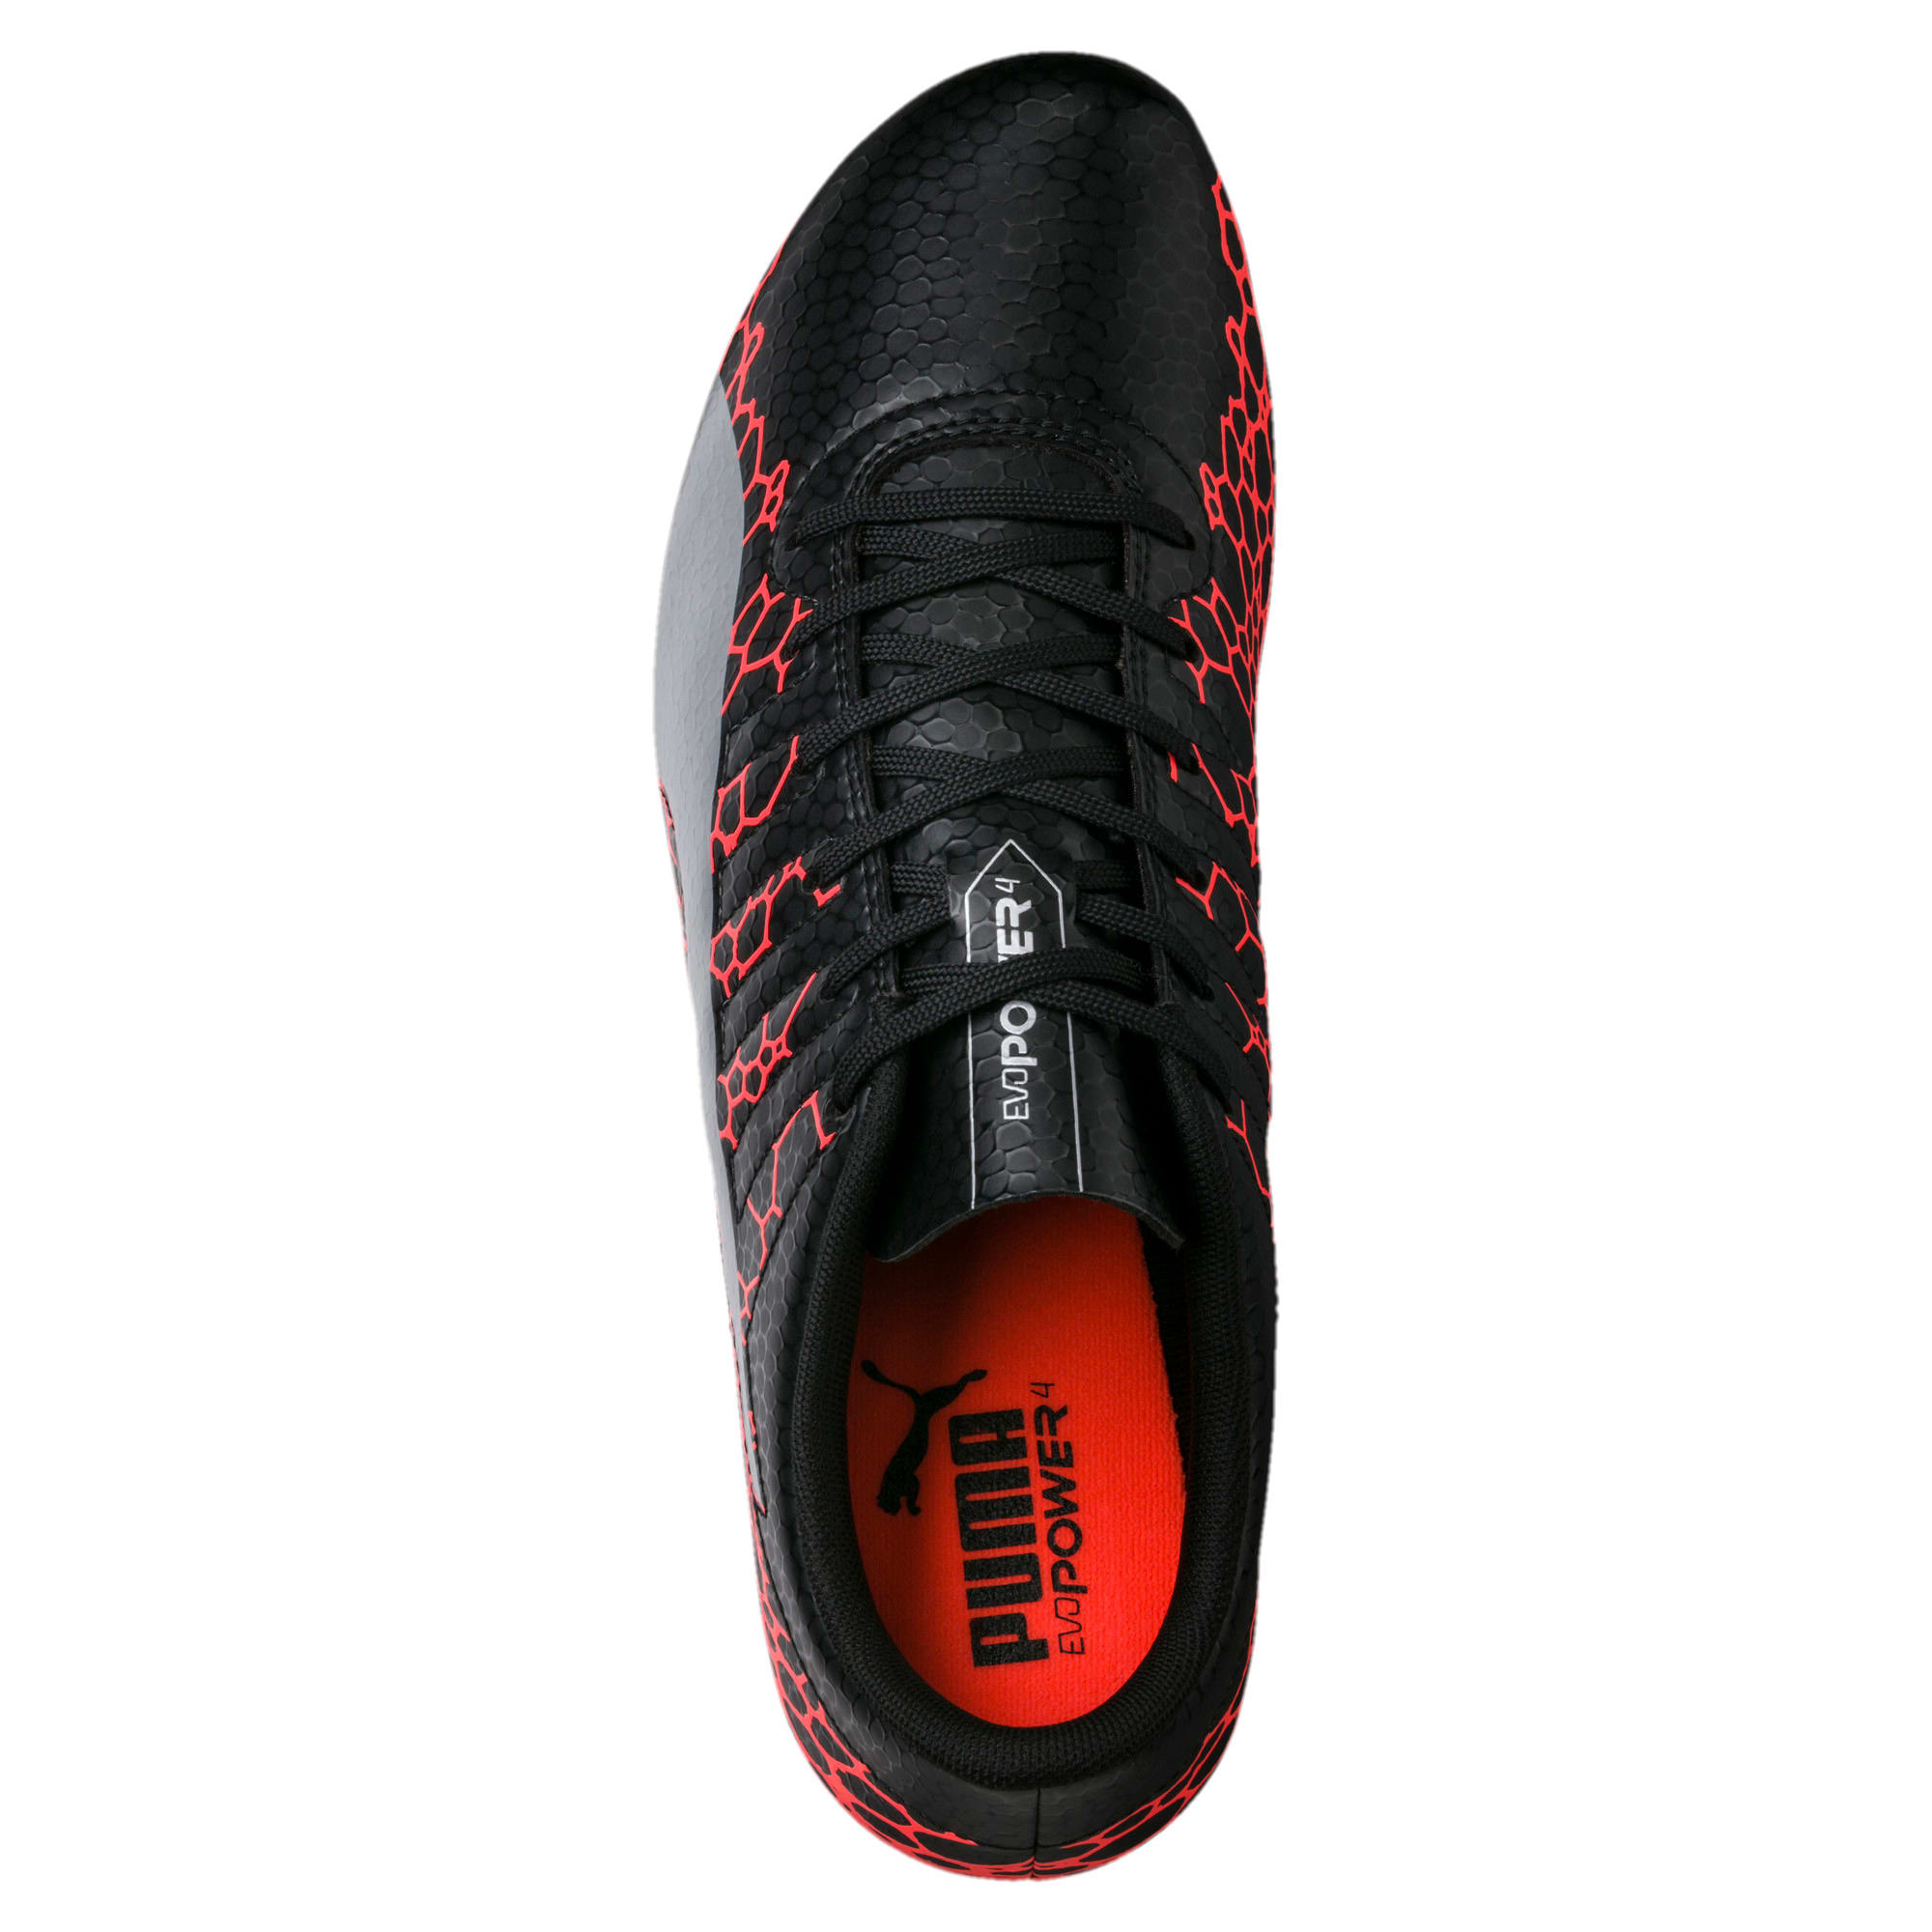 Thumbnail 5 of evoPOWER Vigor 4 Graphic FG Men's Football Boots, Black-Silver-Fiery Coral, medium-IND